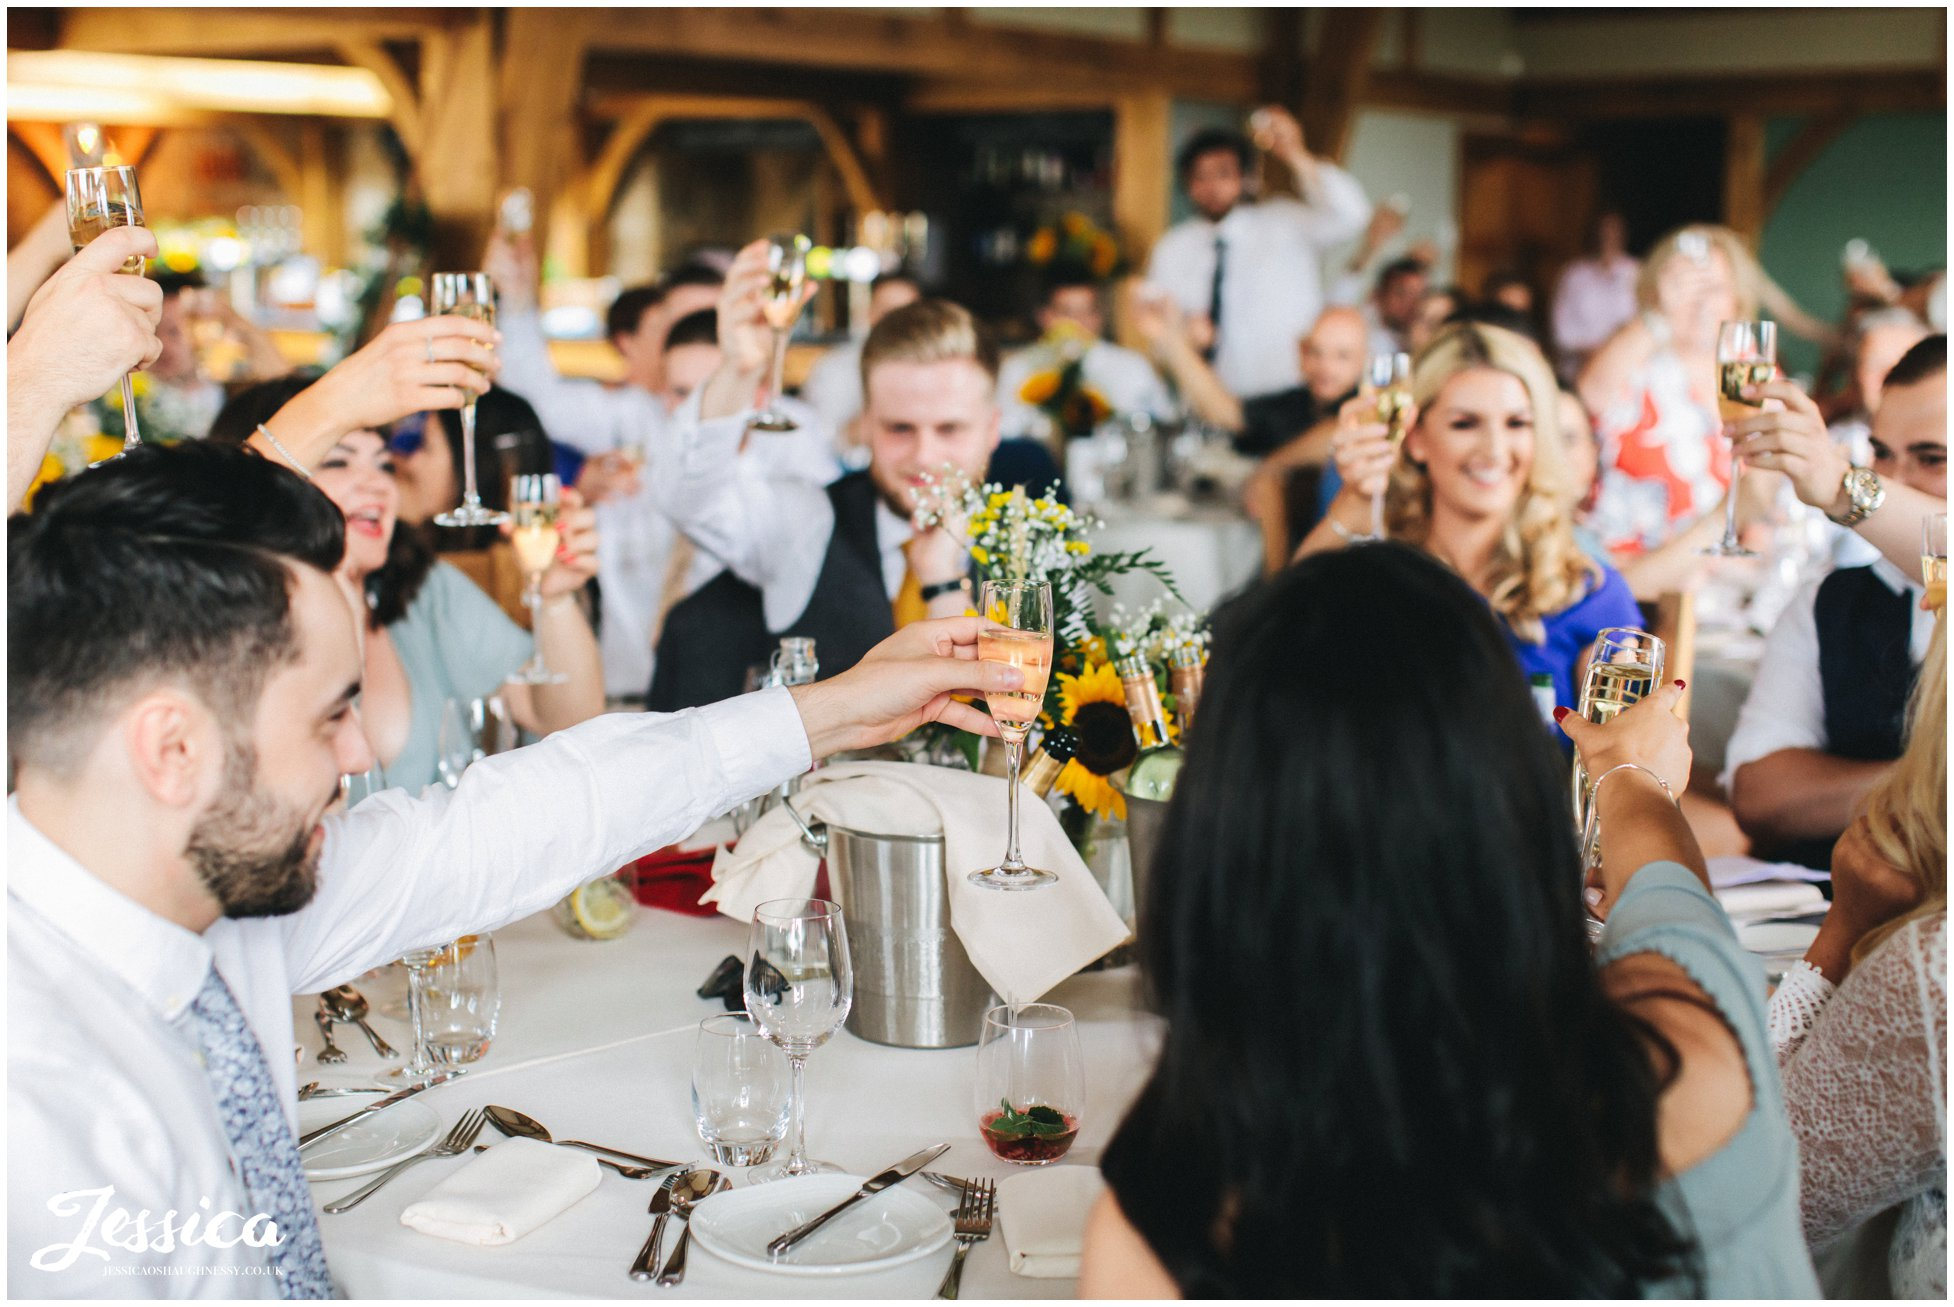 Guests toast with champagne